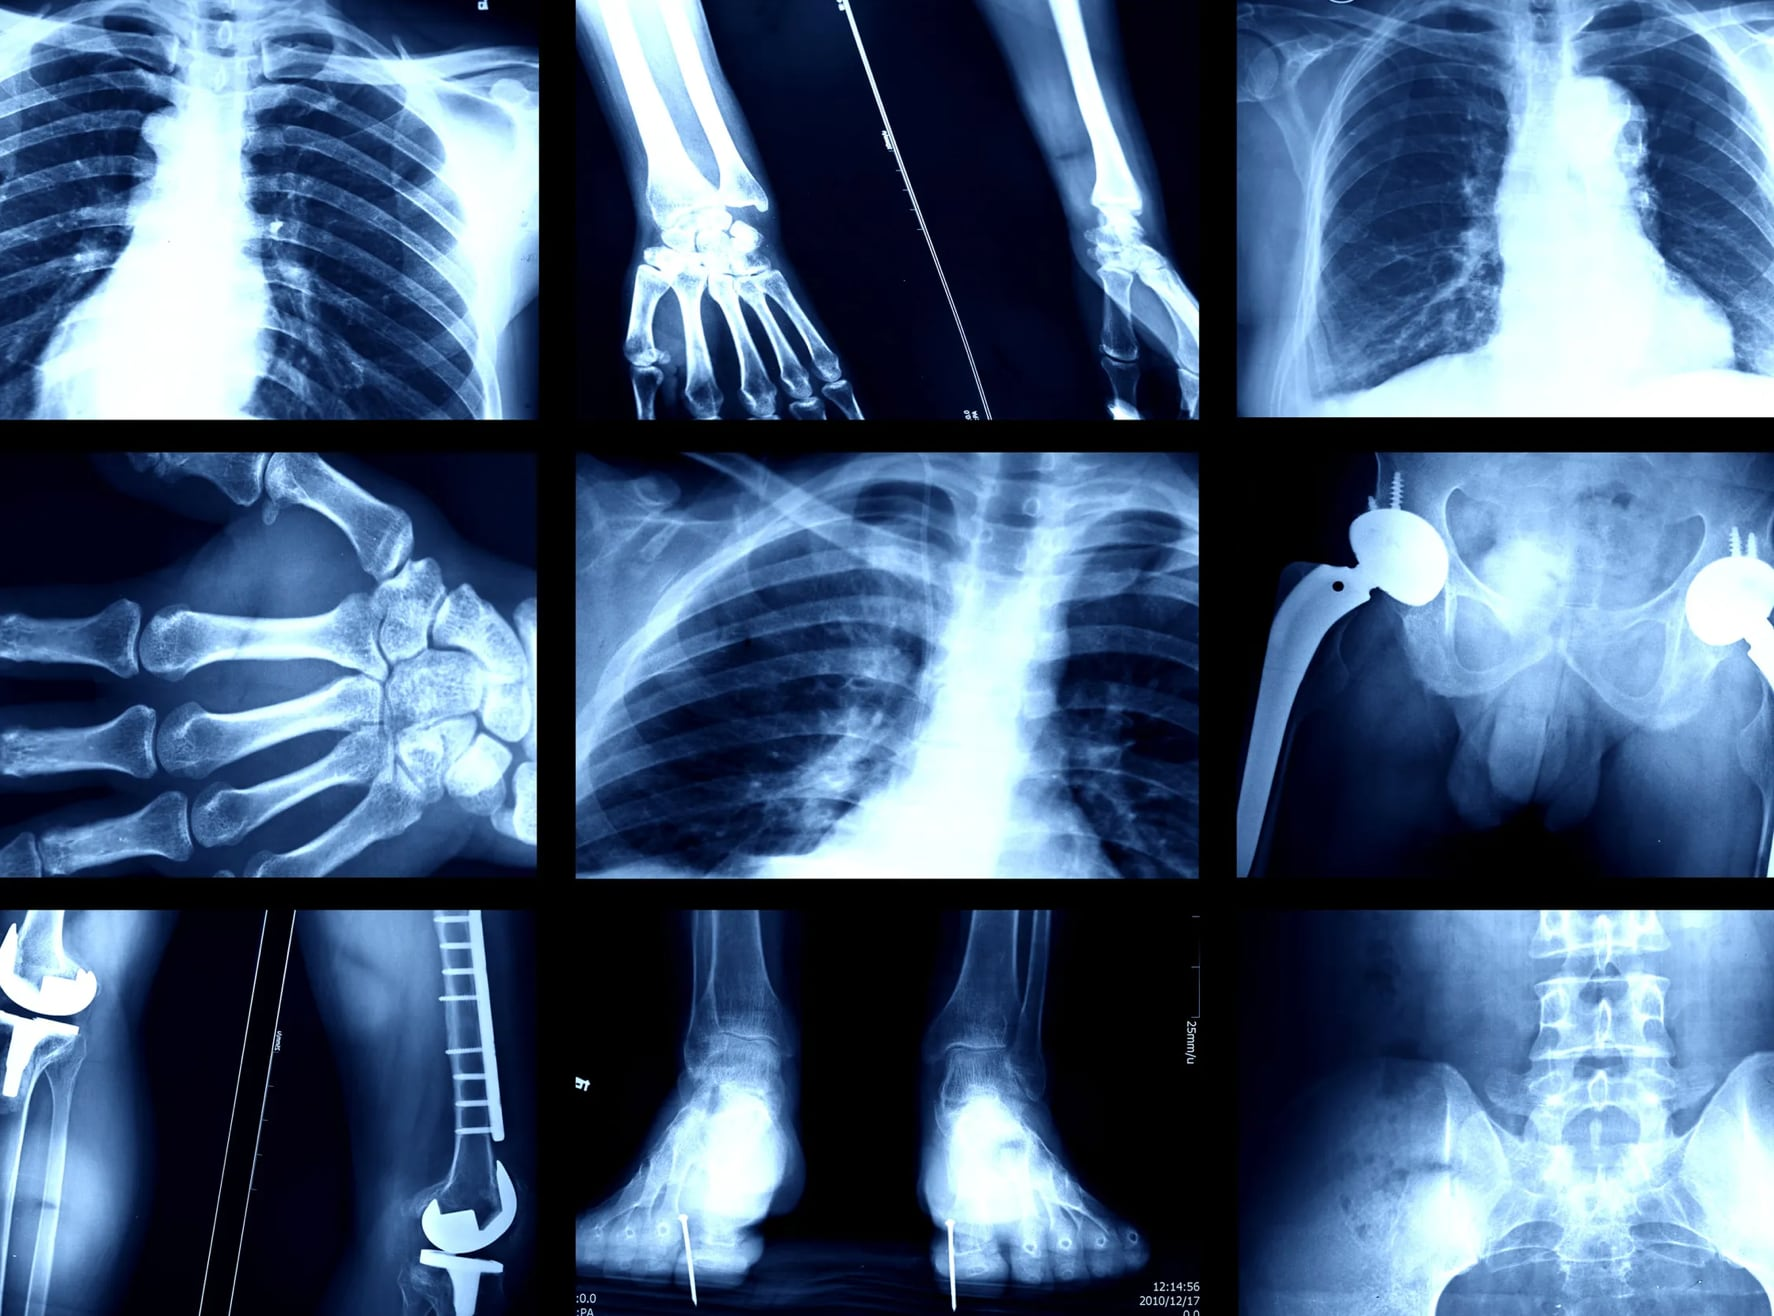 Algorithms Detect Your Race with X-Rays